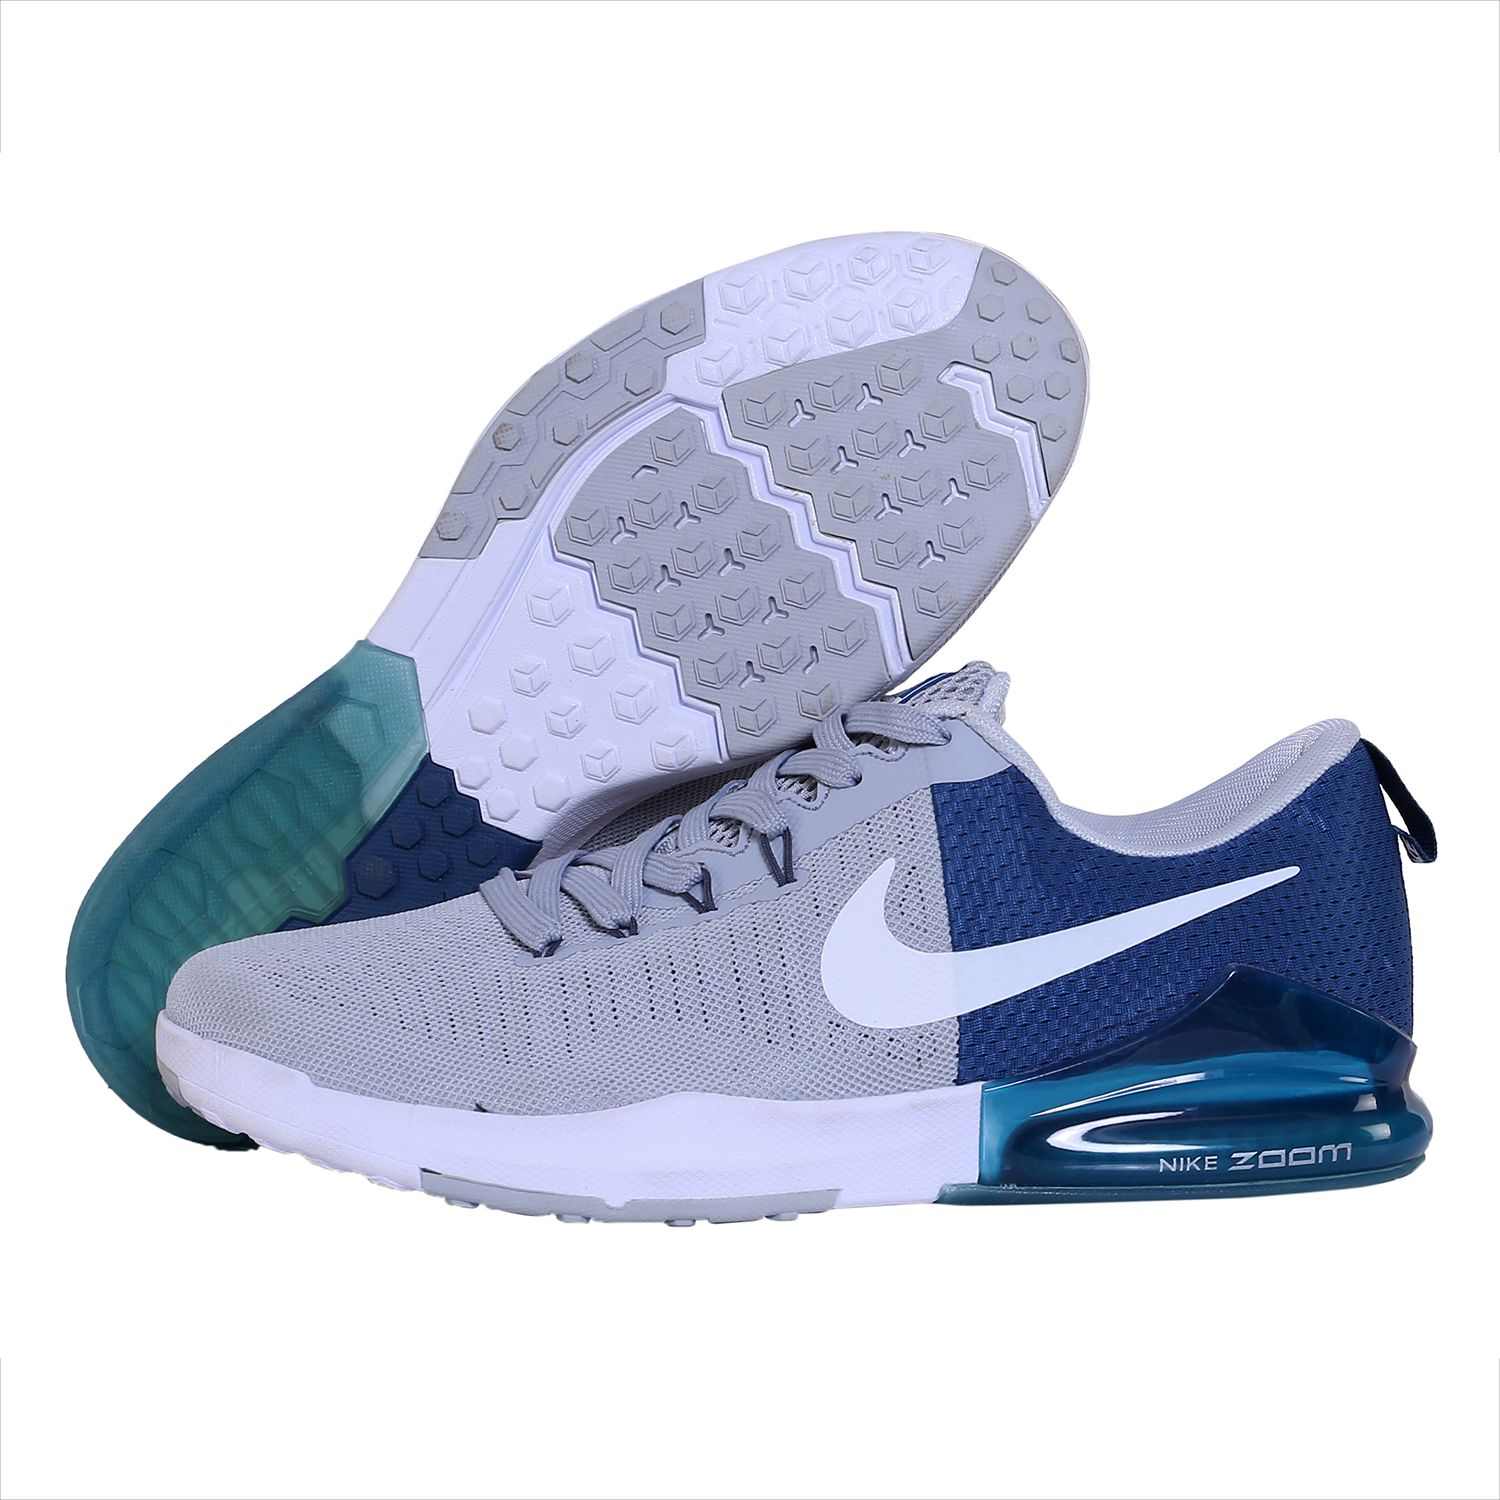 9dab19d351c ... where to buy nike zoom train action silver running shoes d484b 55c42